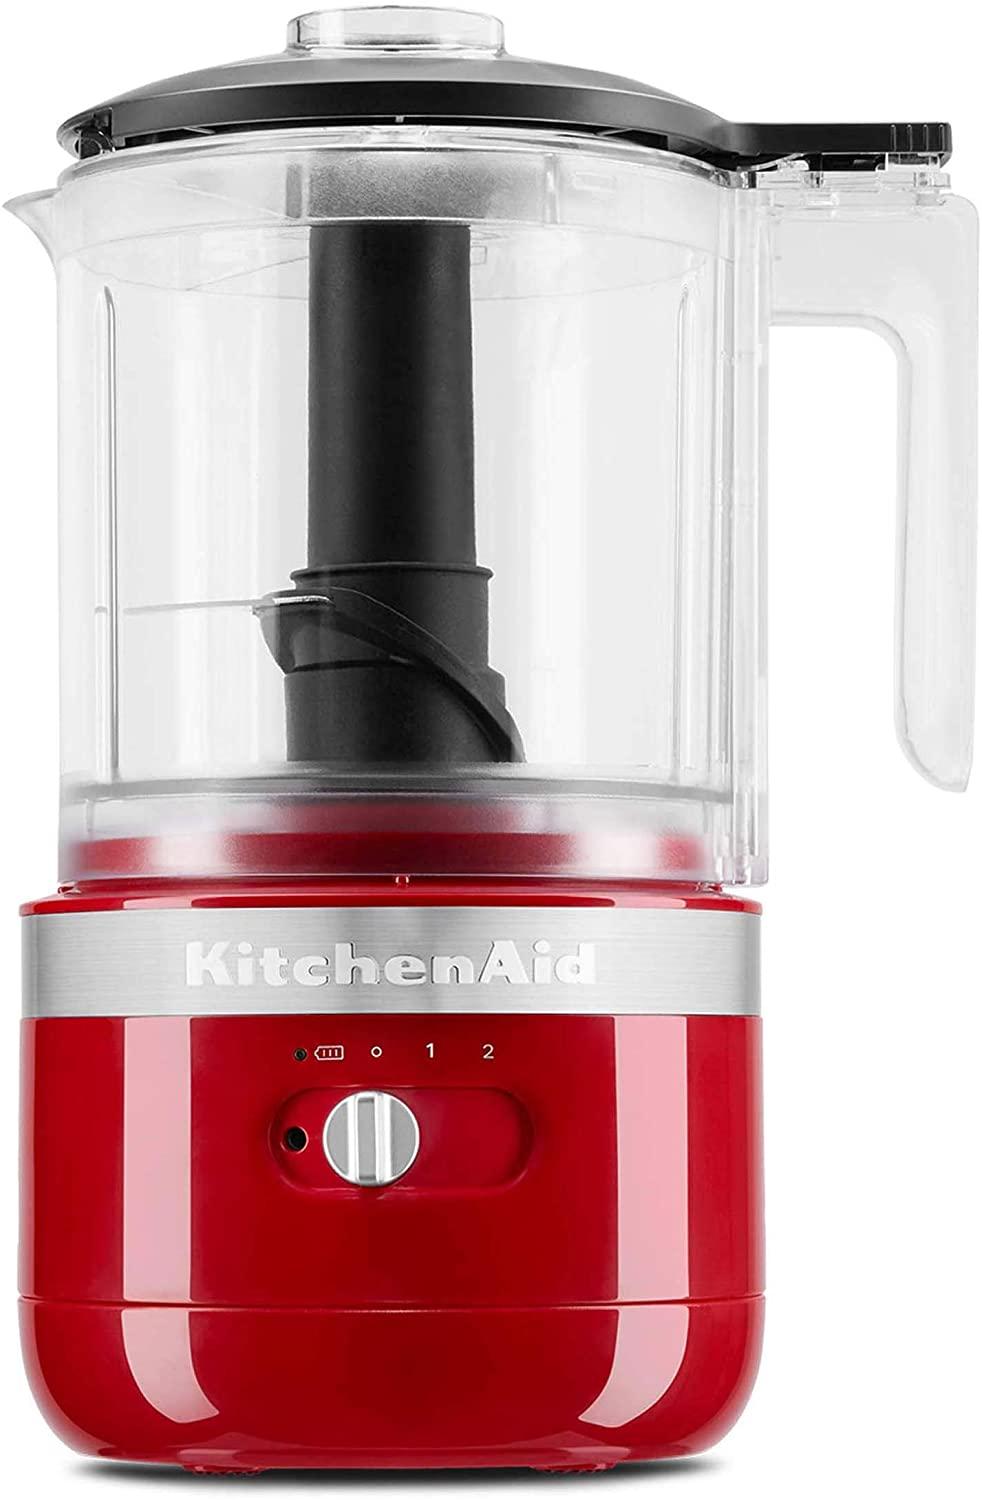 KitchenAid KFCB519ER Food Processor